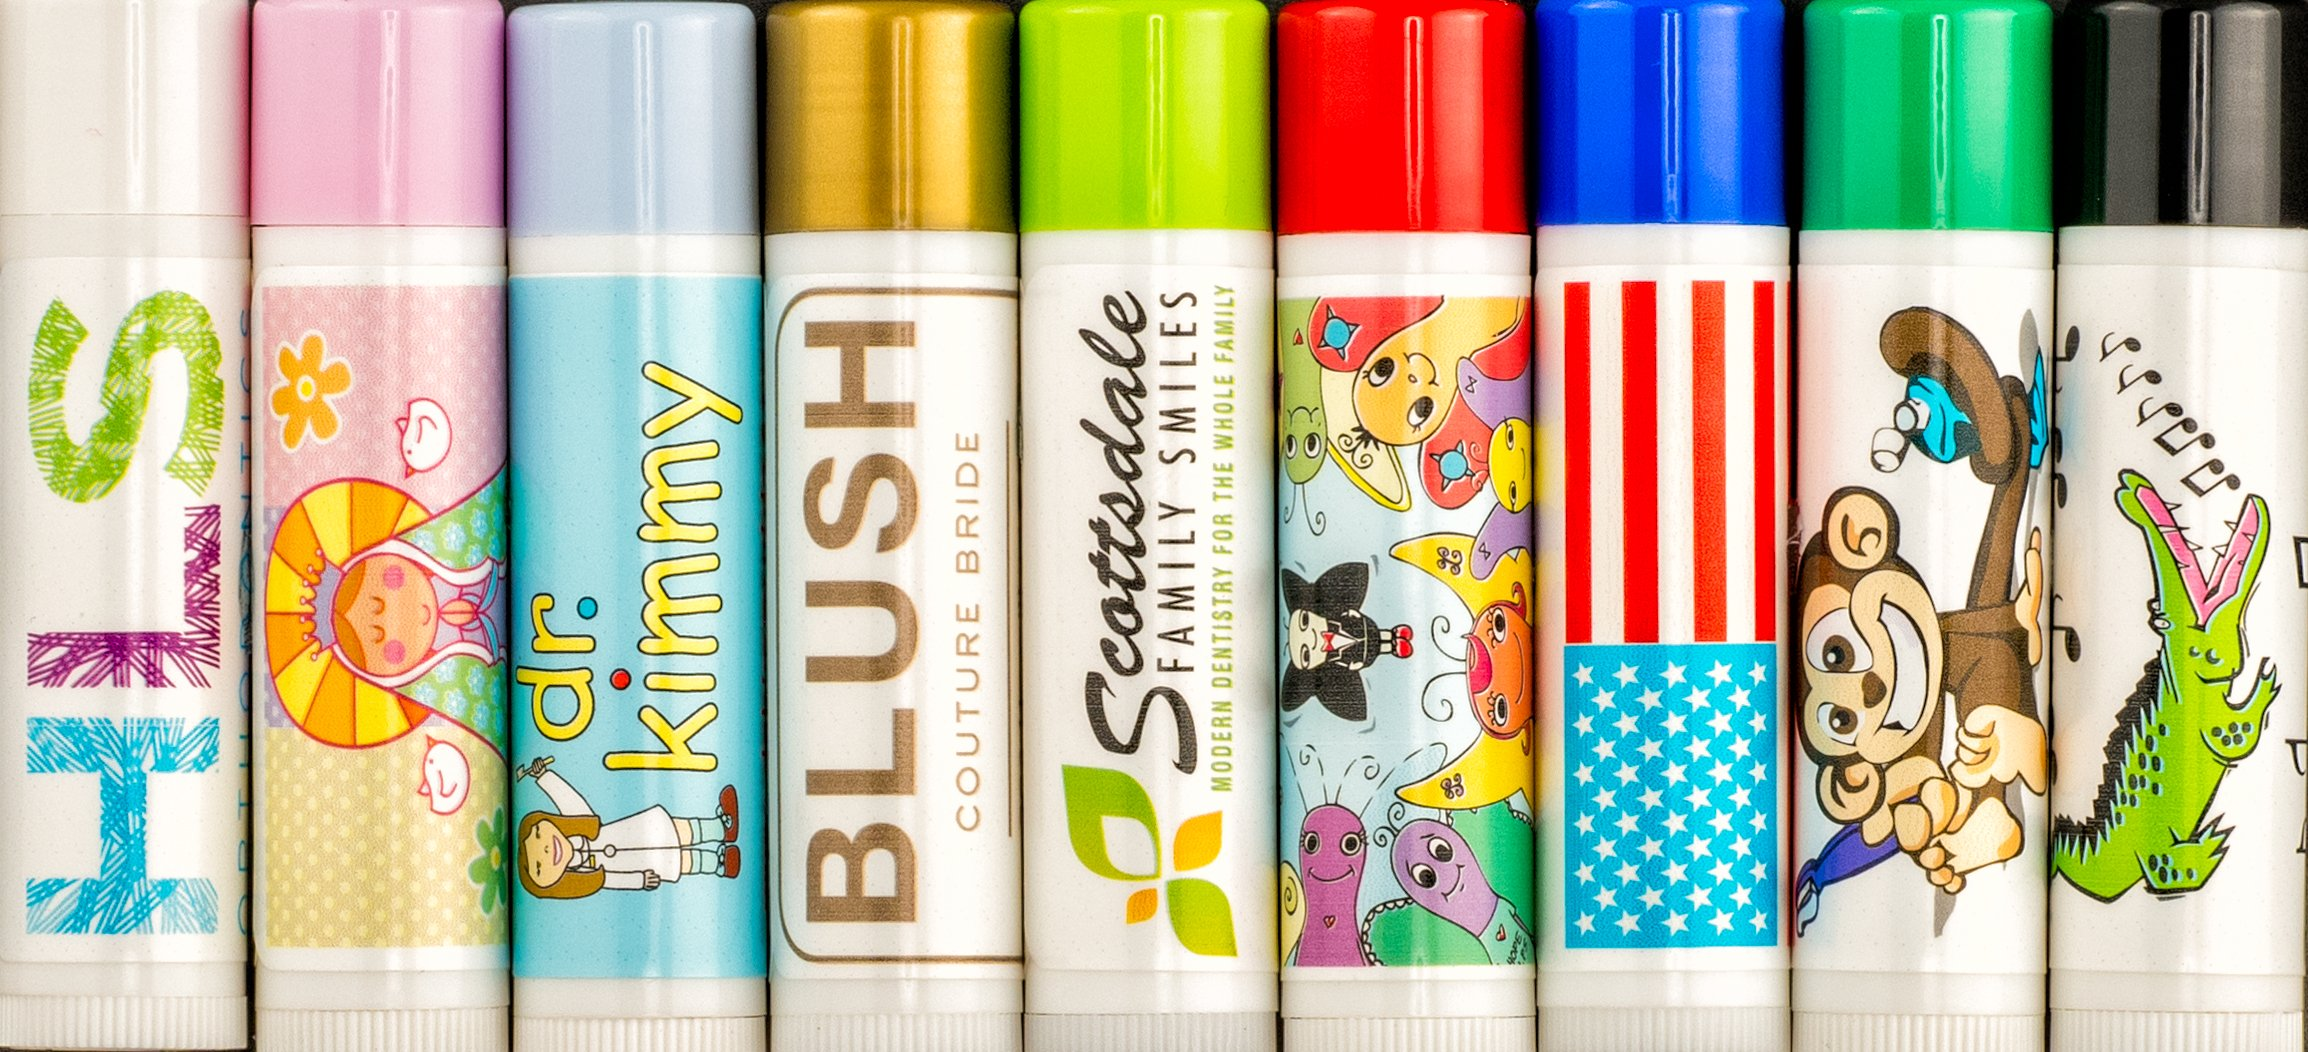 Custom Label Lip Balm (Quantity 100 Tubes) $0.49 Cents Each/Promotional Product/Bulk Order/Free Art Work email Sales@lipbalmexpress.com with Questions